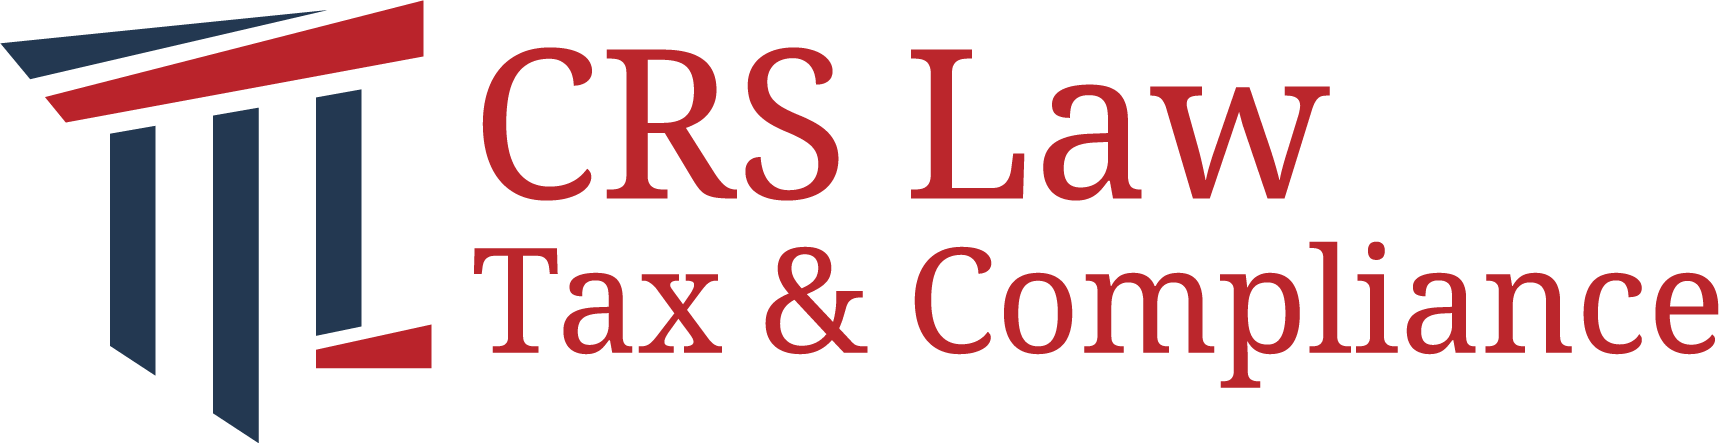 CRS Law Tax & Compliance lab